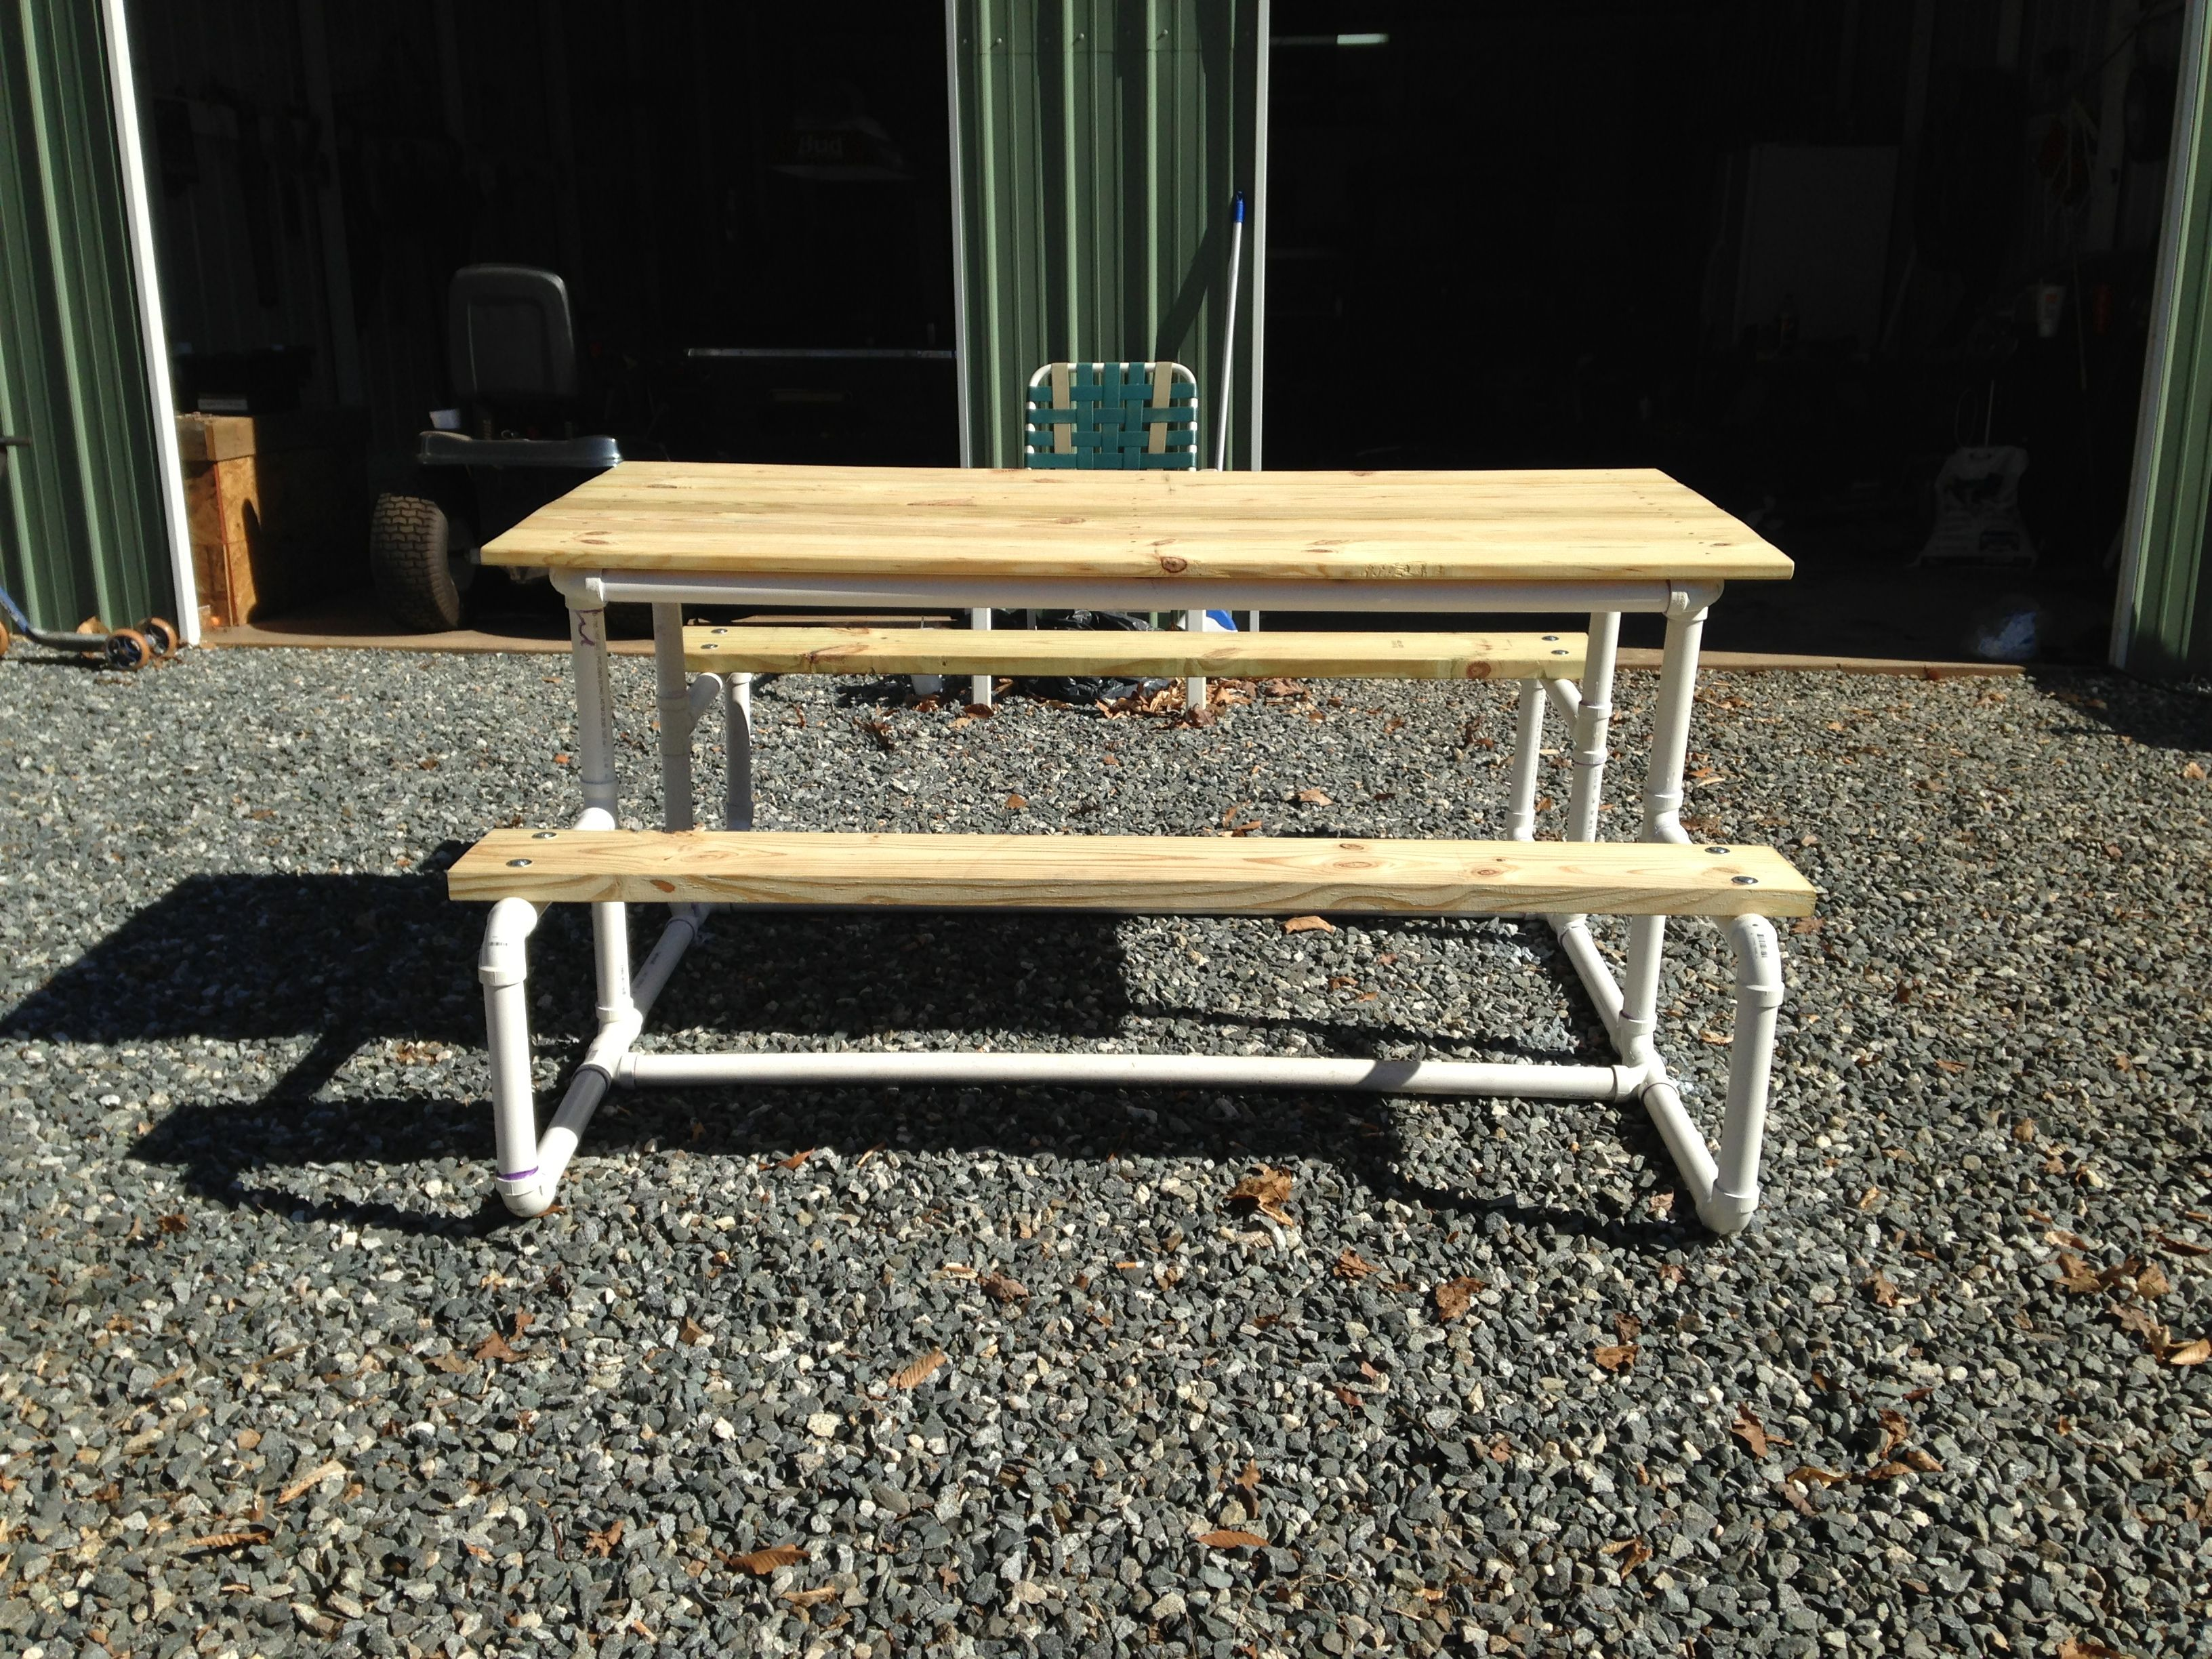 Picnic Table Make With Pvc Pipe Yard